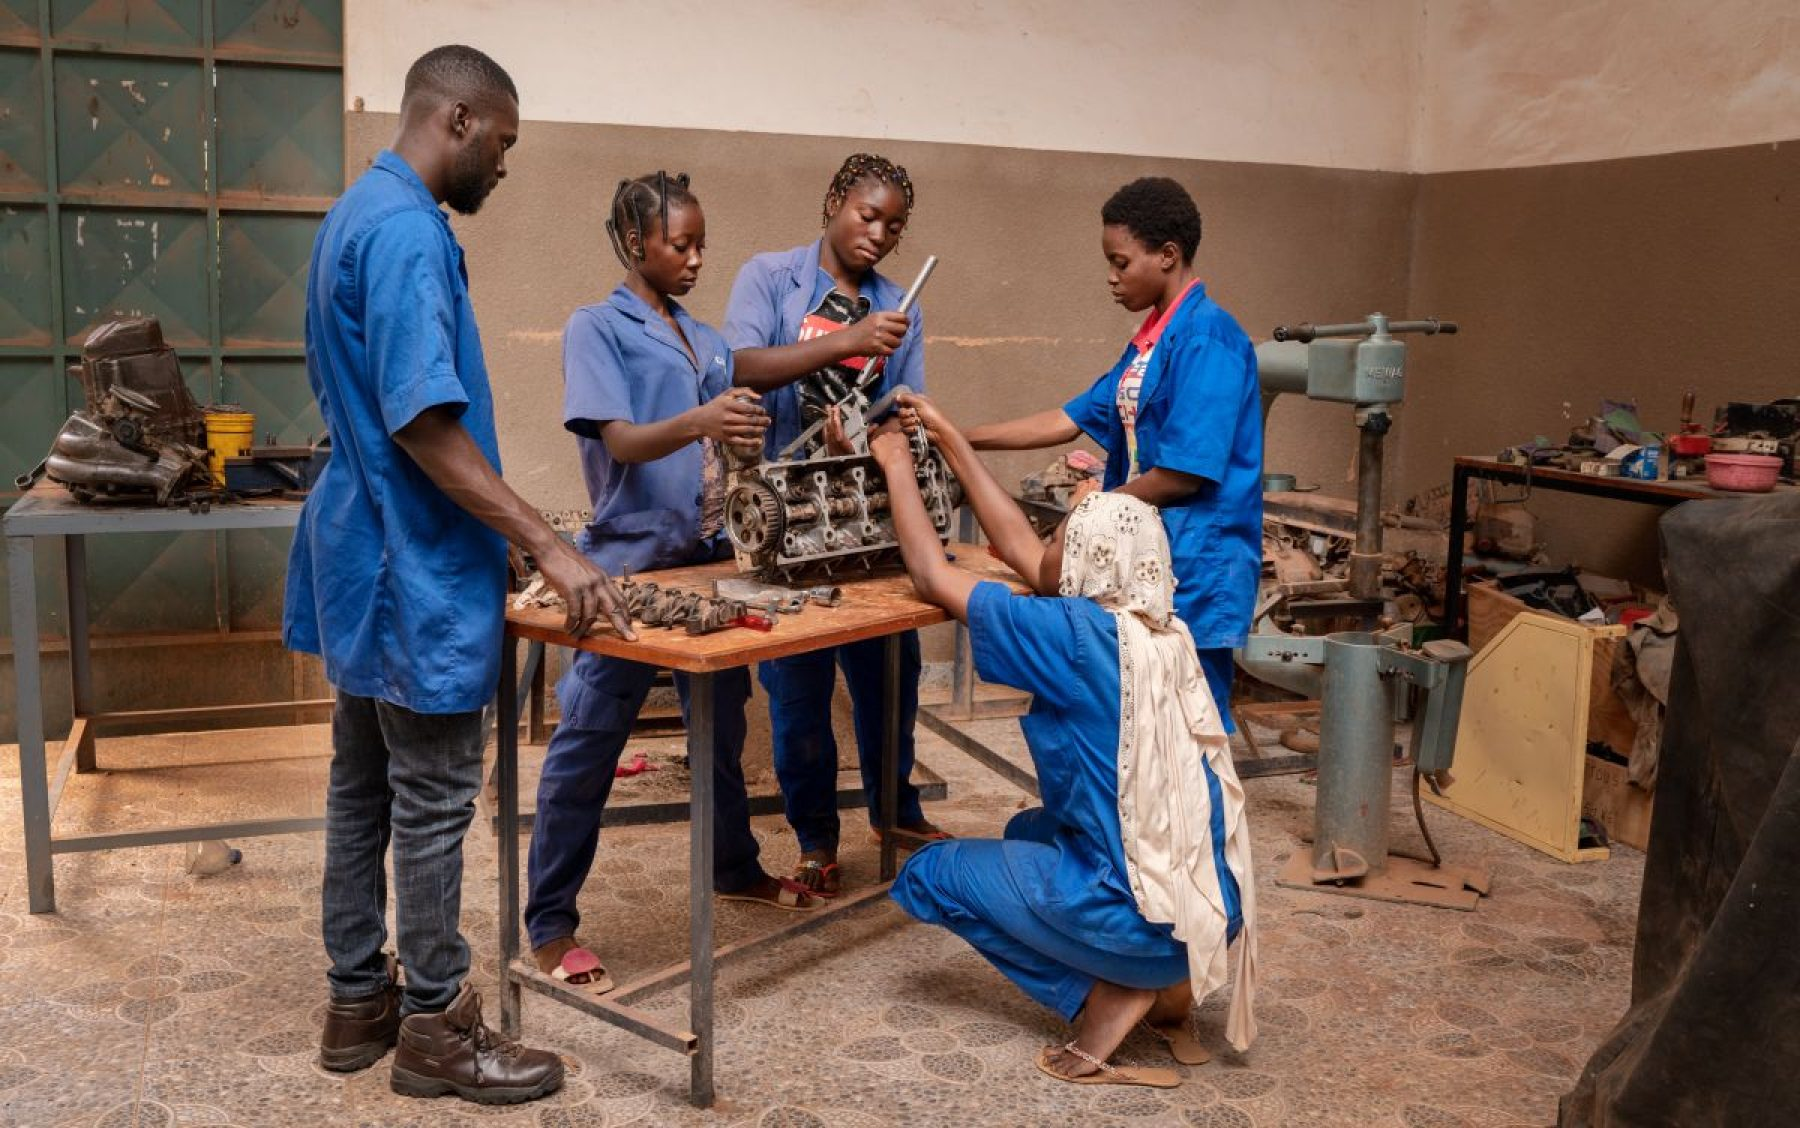 Image for The young women of Burkina Faso who fix stereotypes by repairing cars